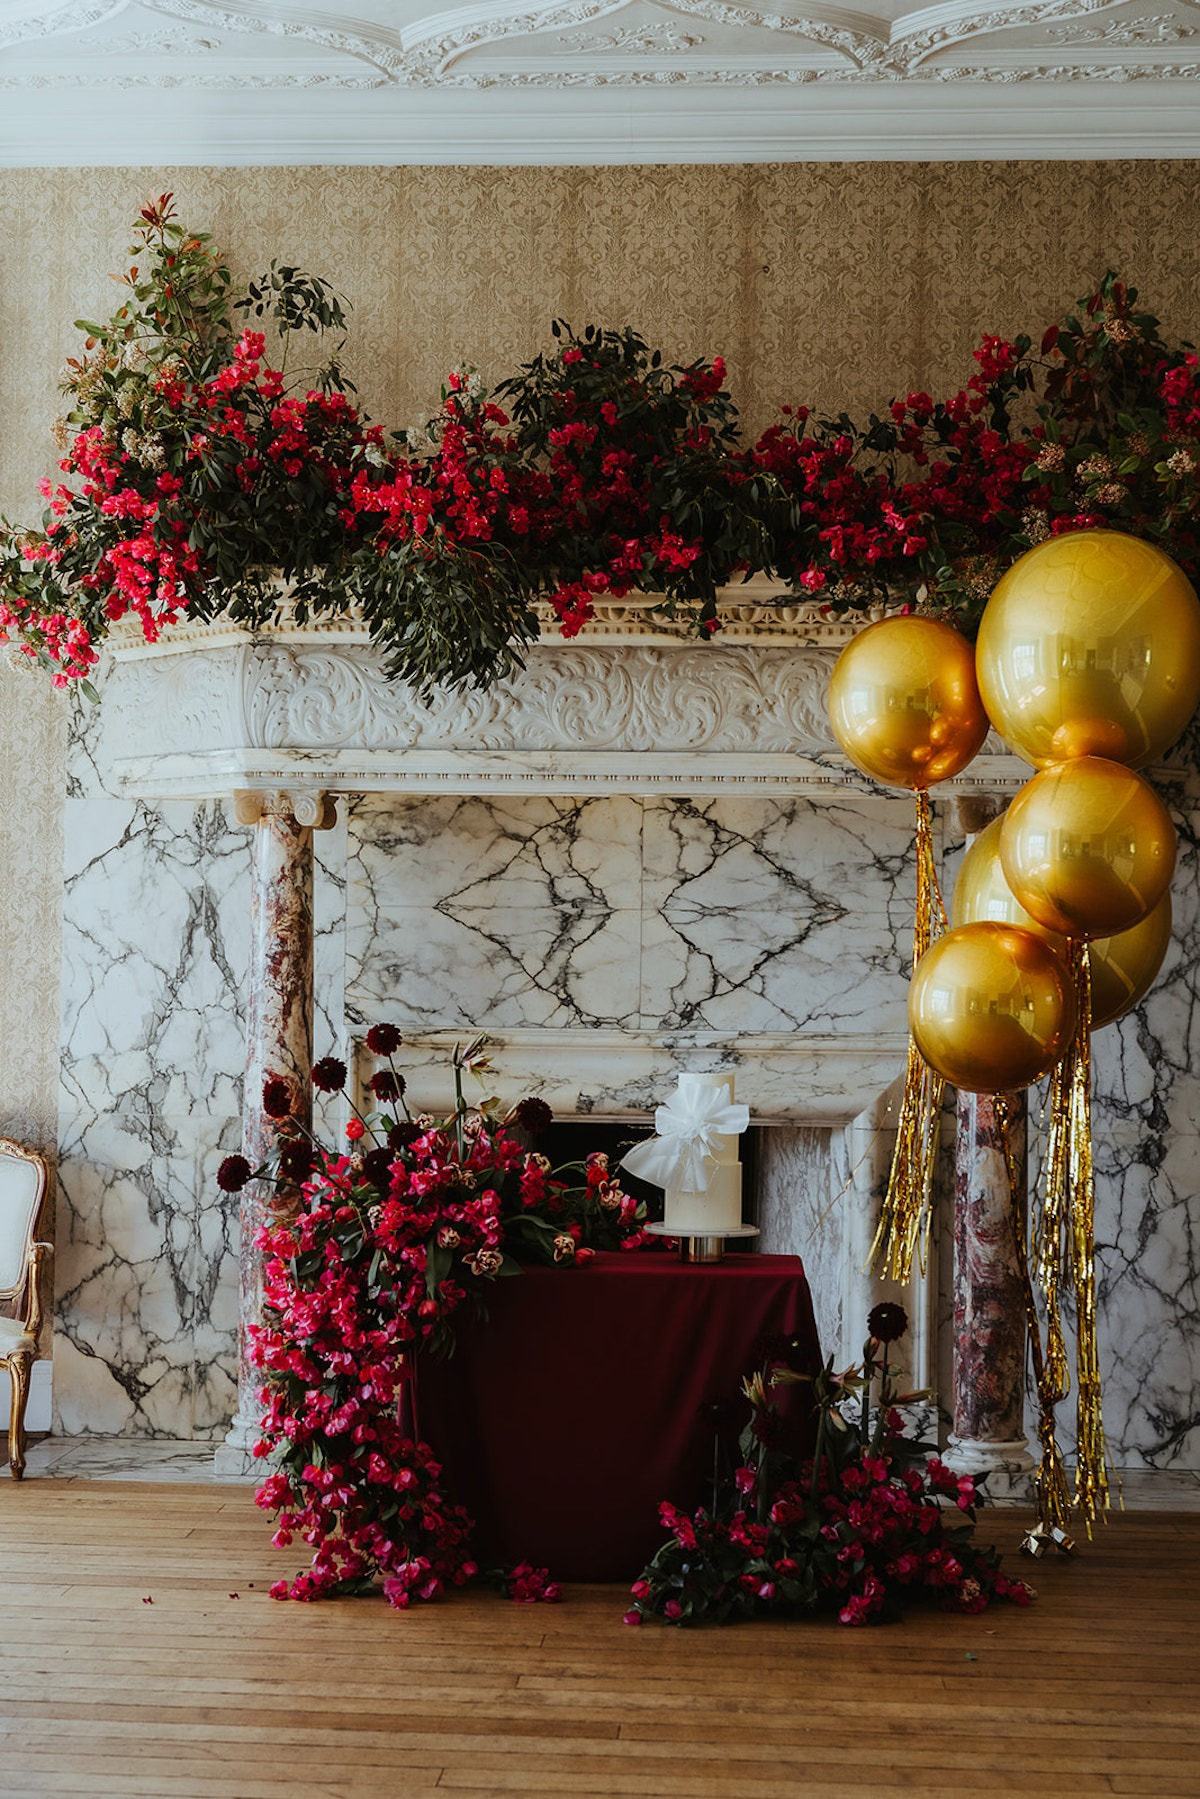 Calling All Party Animals–An Eccentric Escapade At An English Manorhouse